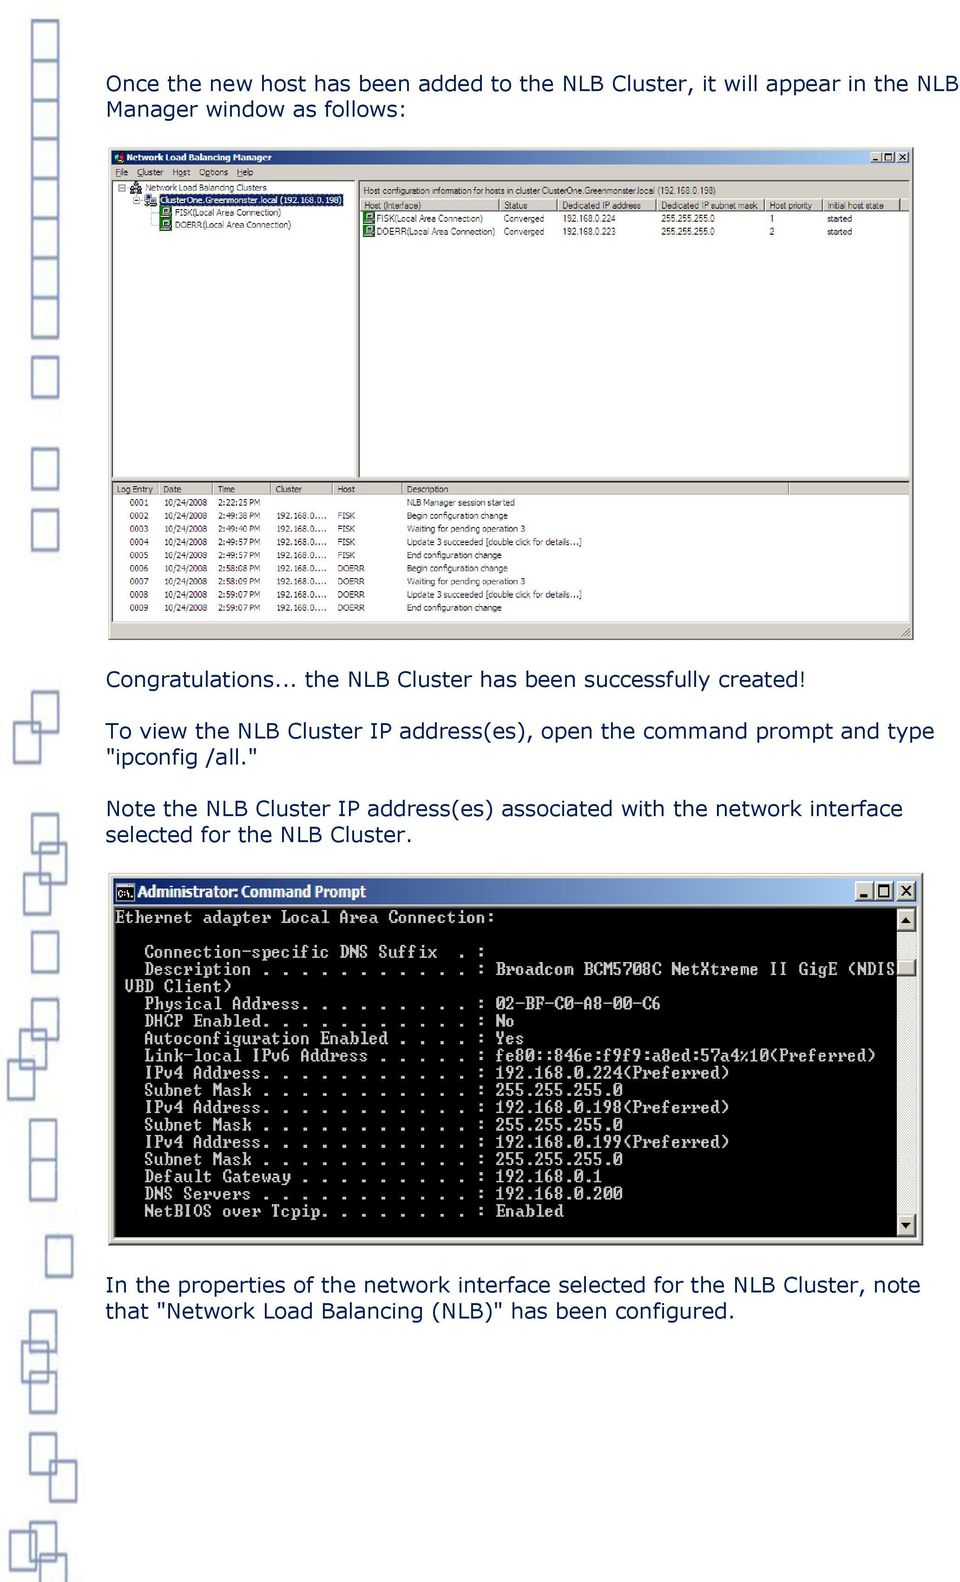 "To view the NLB Cluster IP address(es), open the command prompt and type ""ipconfig /all."